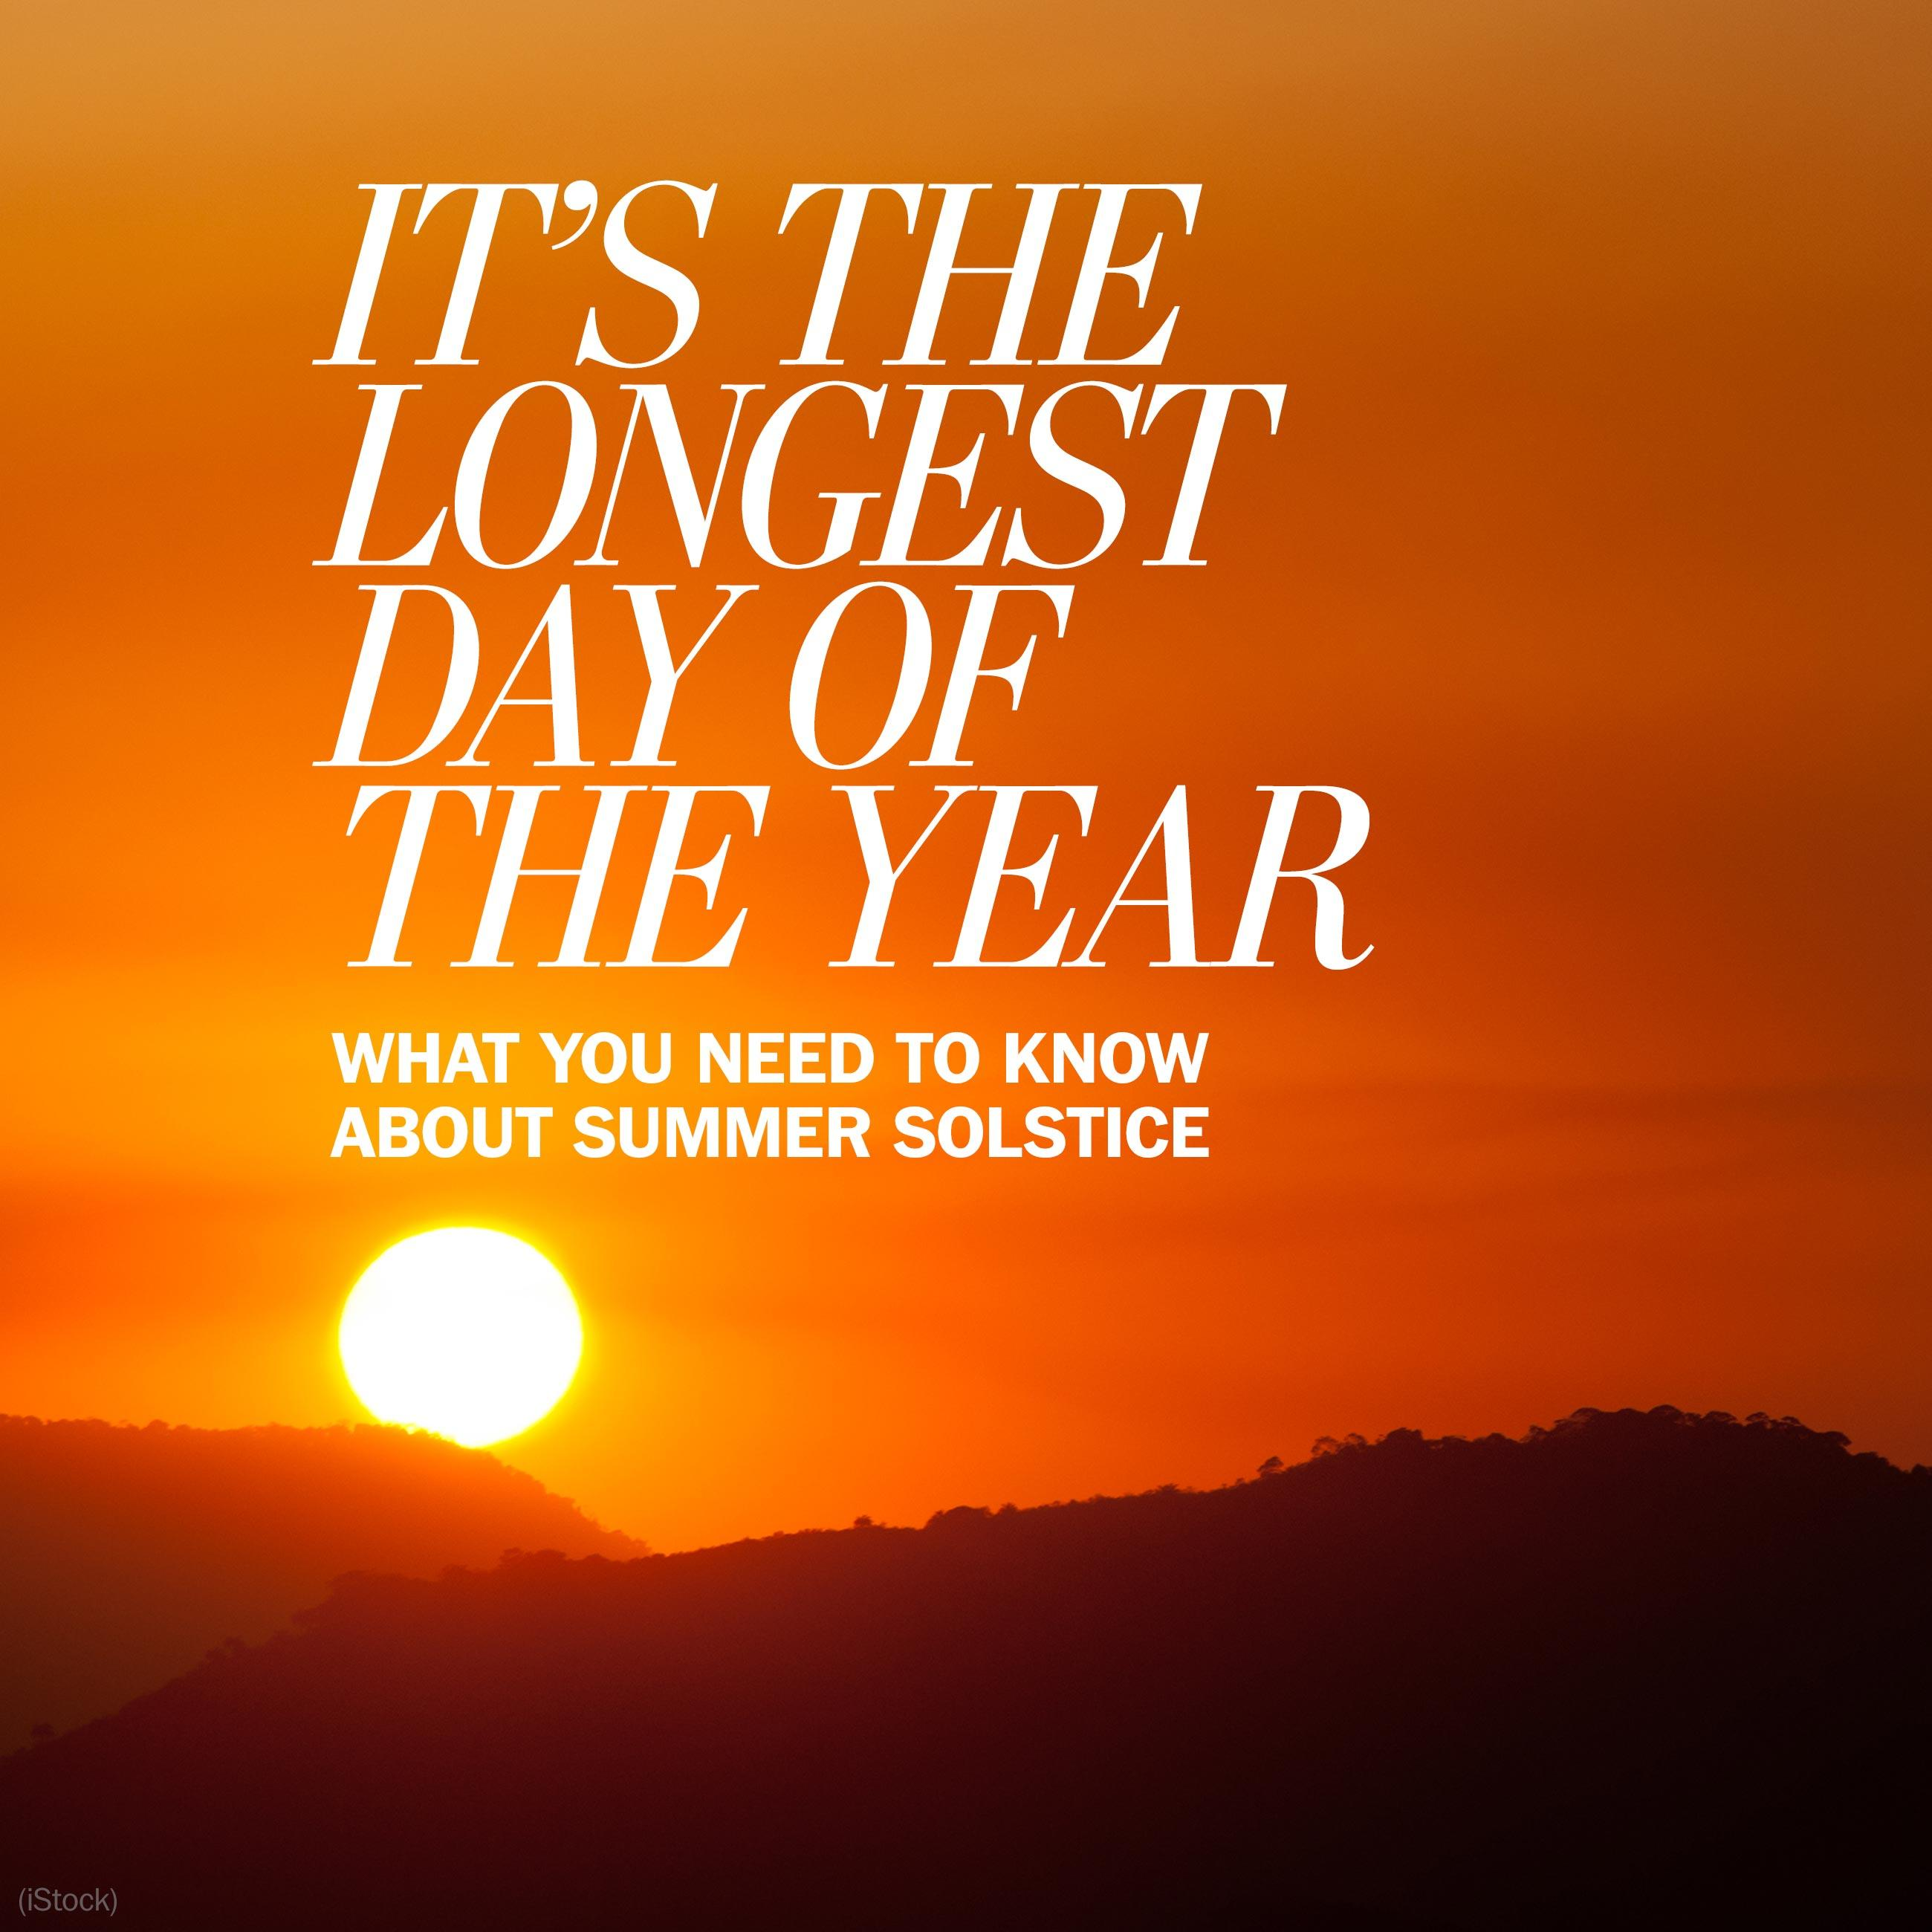 Summer solstice 2016: Everything you need to know about the longest day of the year